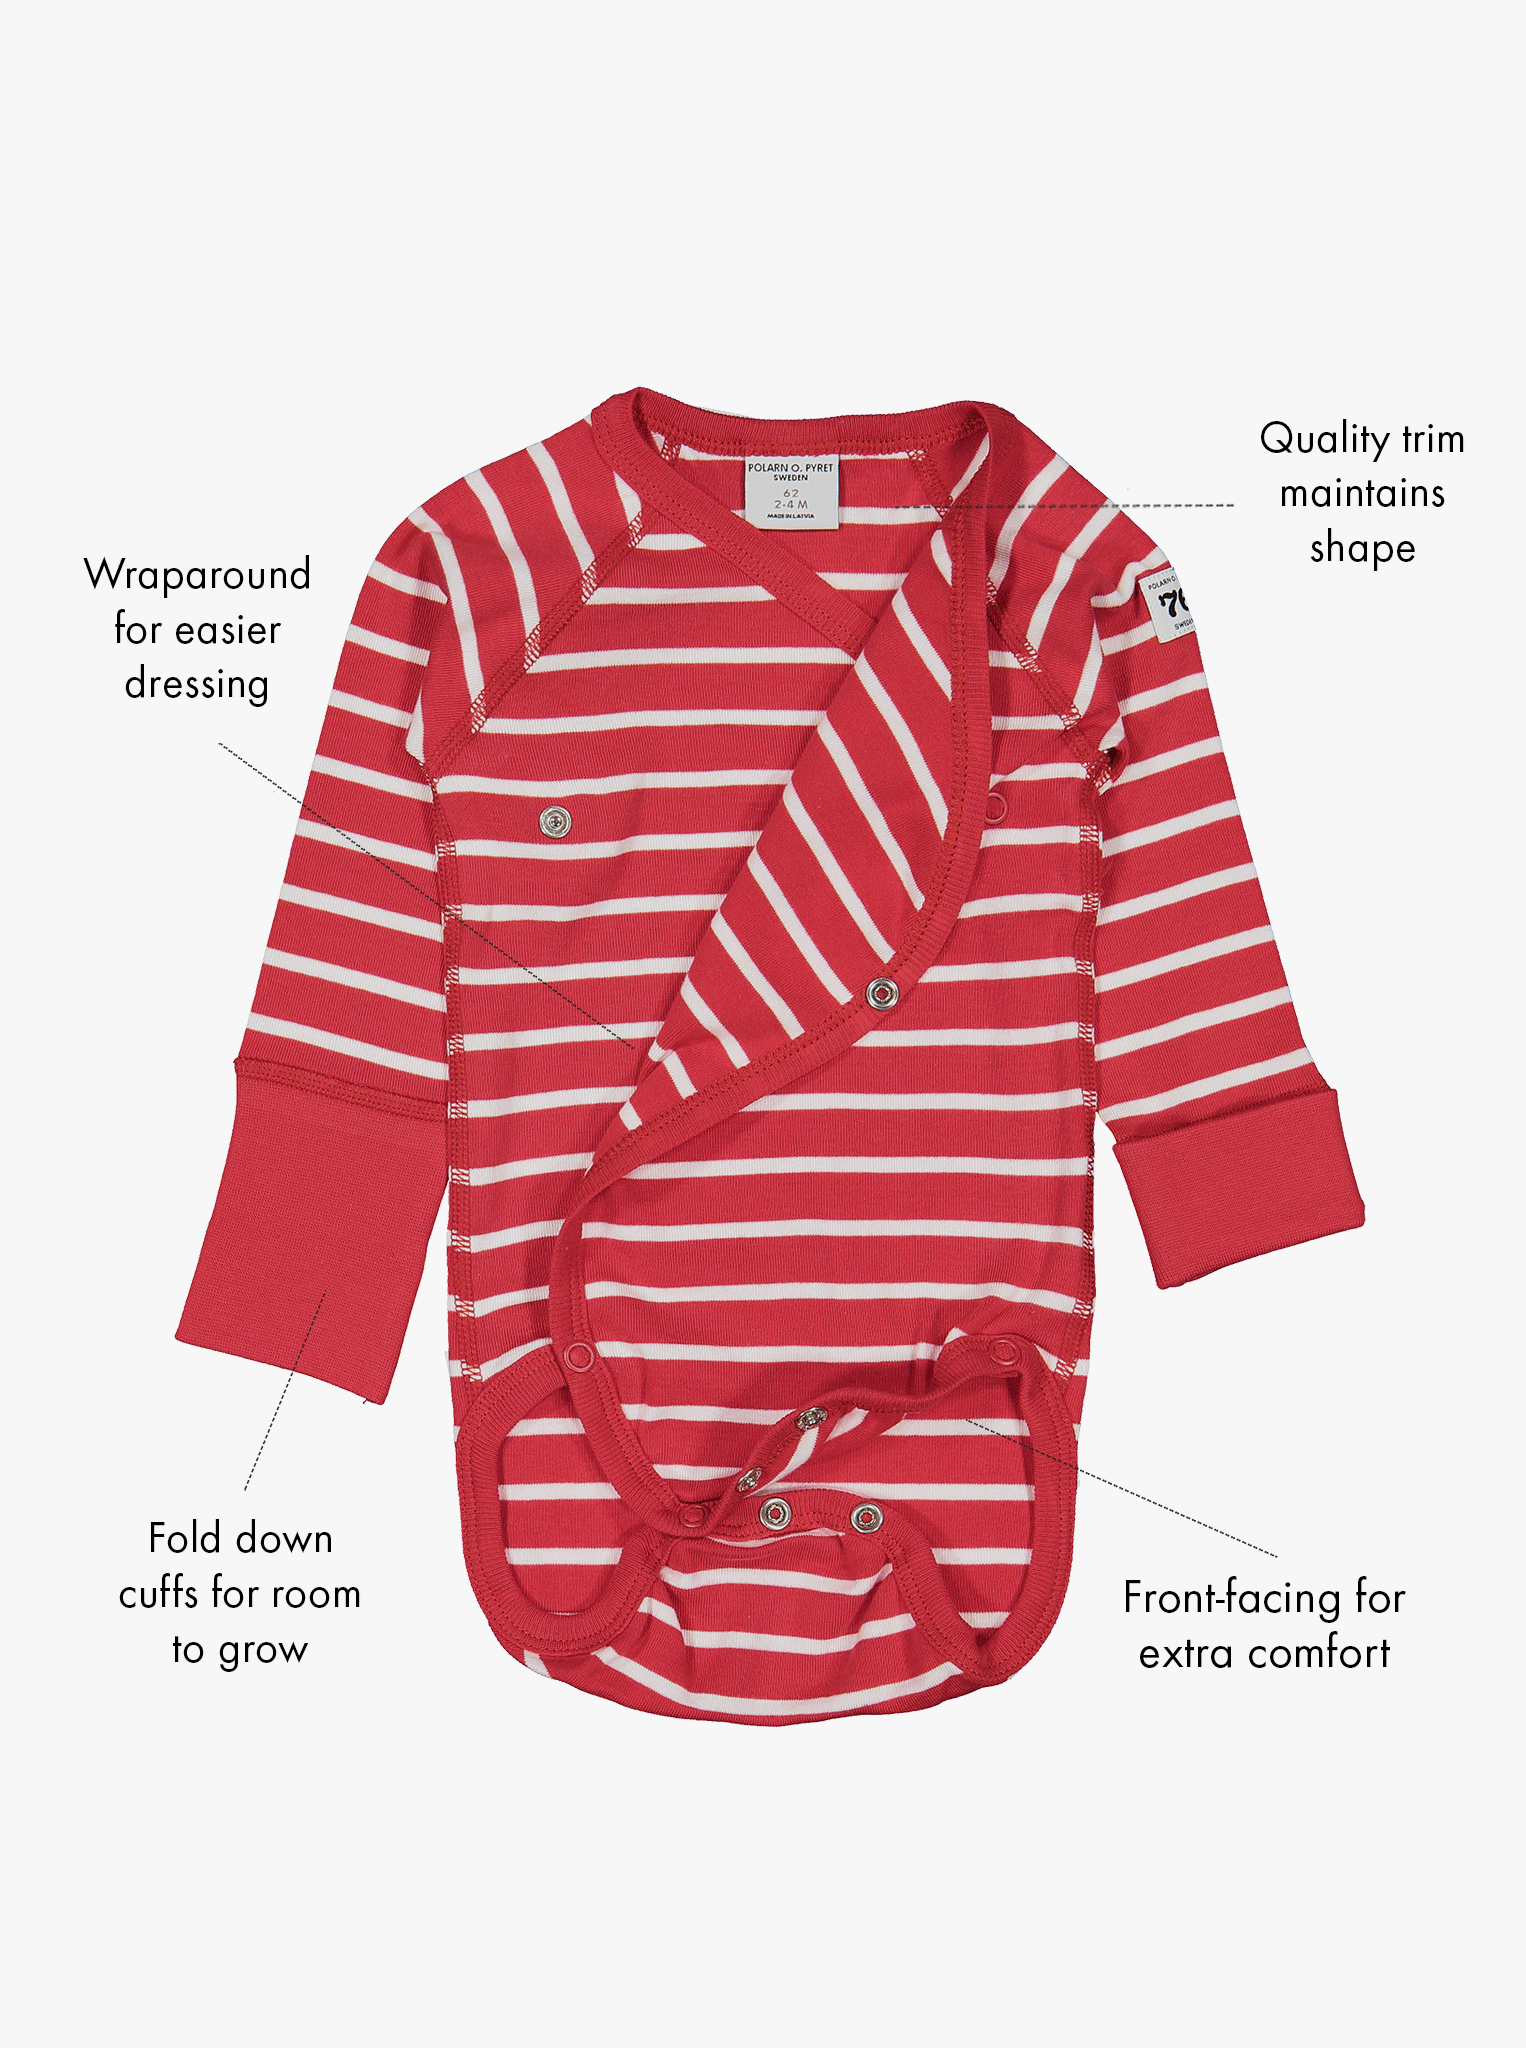 Organic cotton long sleeve babygrow in a classic red and white striped print with text labels shown on the sides